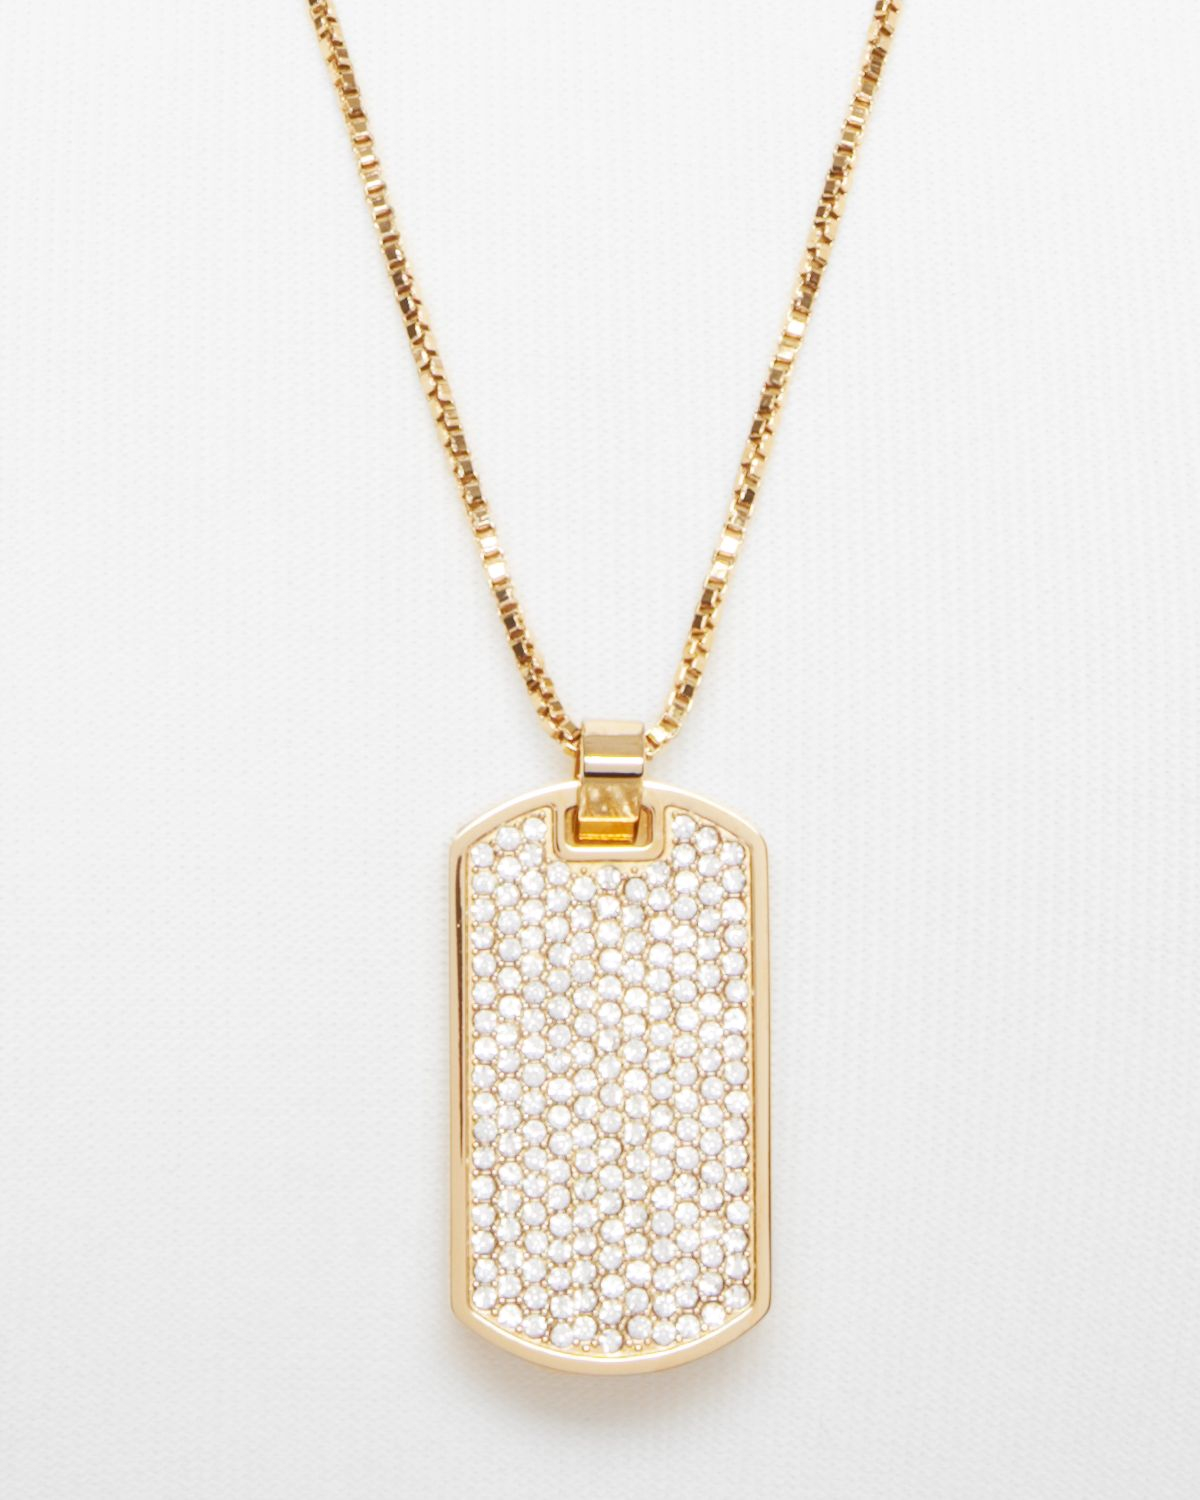 Lyst Michael Kors Pave Dog Tag Necklace 26 In Natural